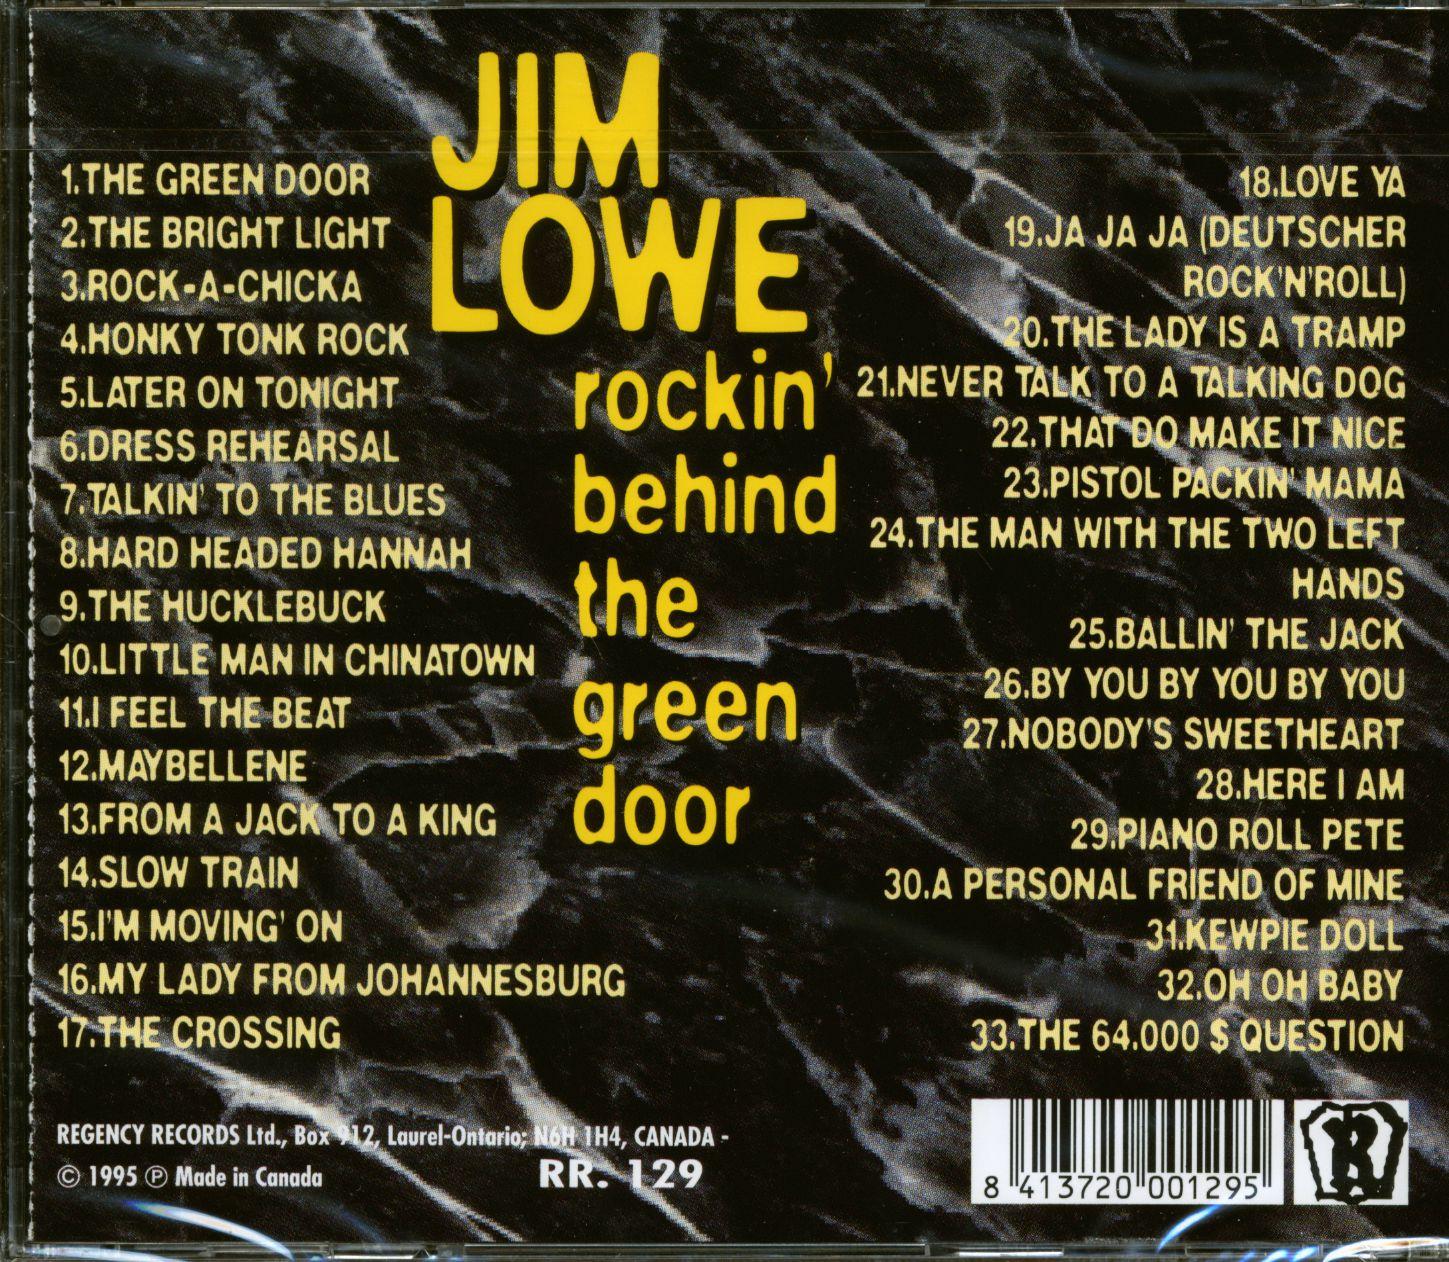 Behind The Green Door Pics jim lowe rockin' behind the green door (cd)